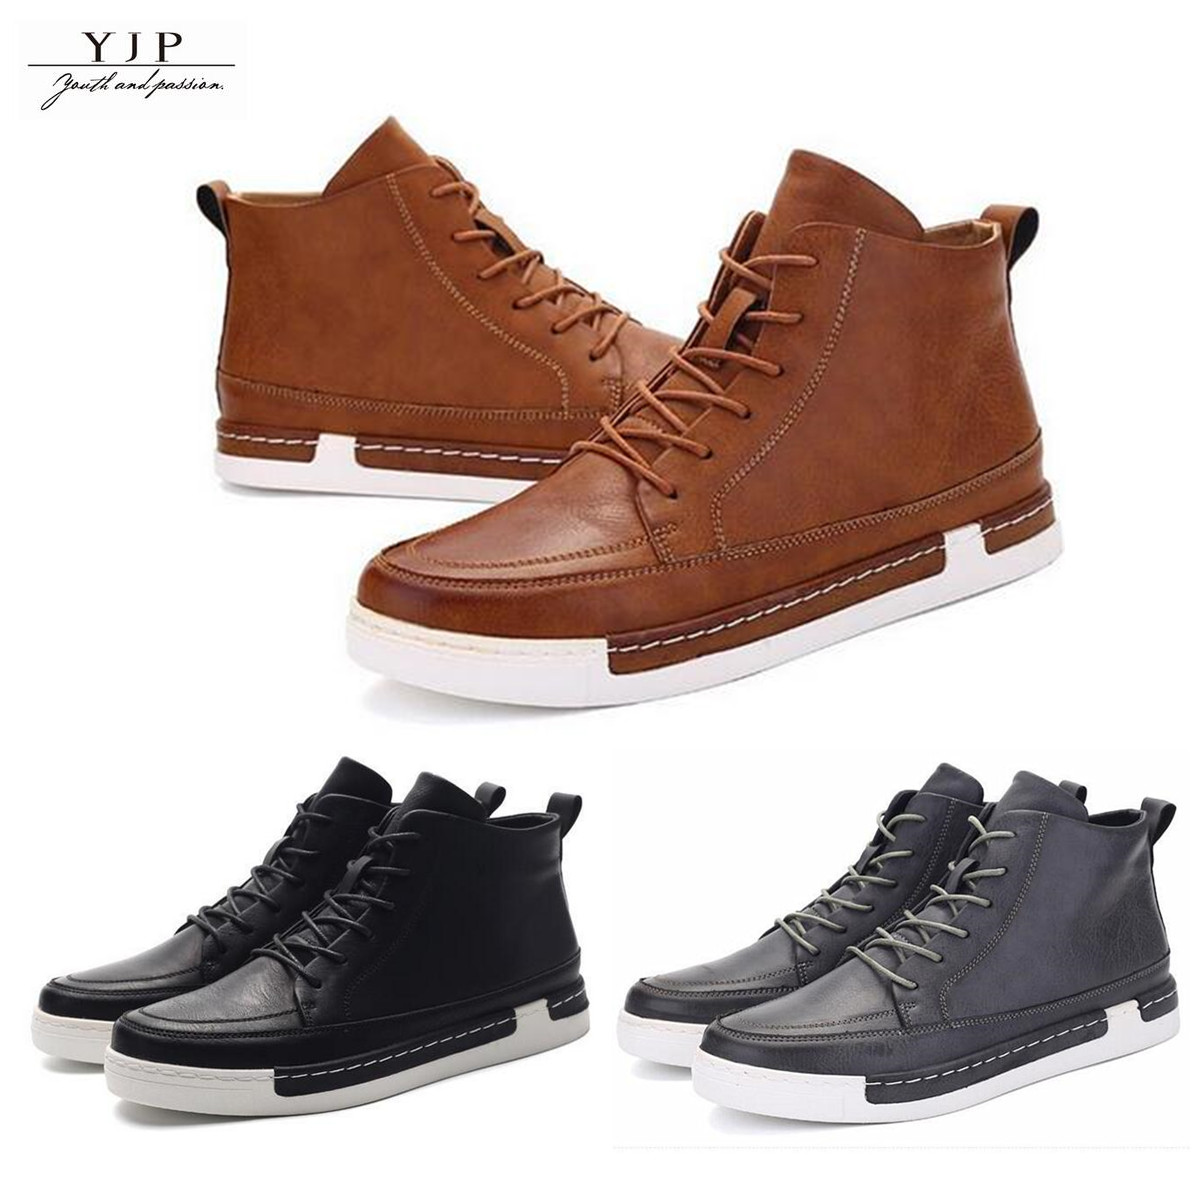 YJP Men's Winter Casual High top Sneakers Ankle Boots Waterproof  Leather shoes